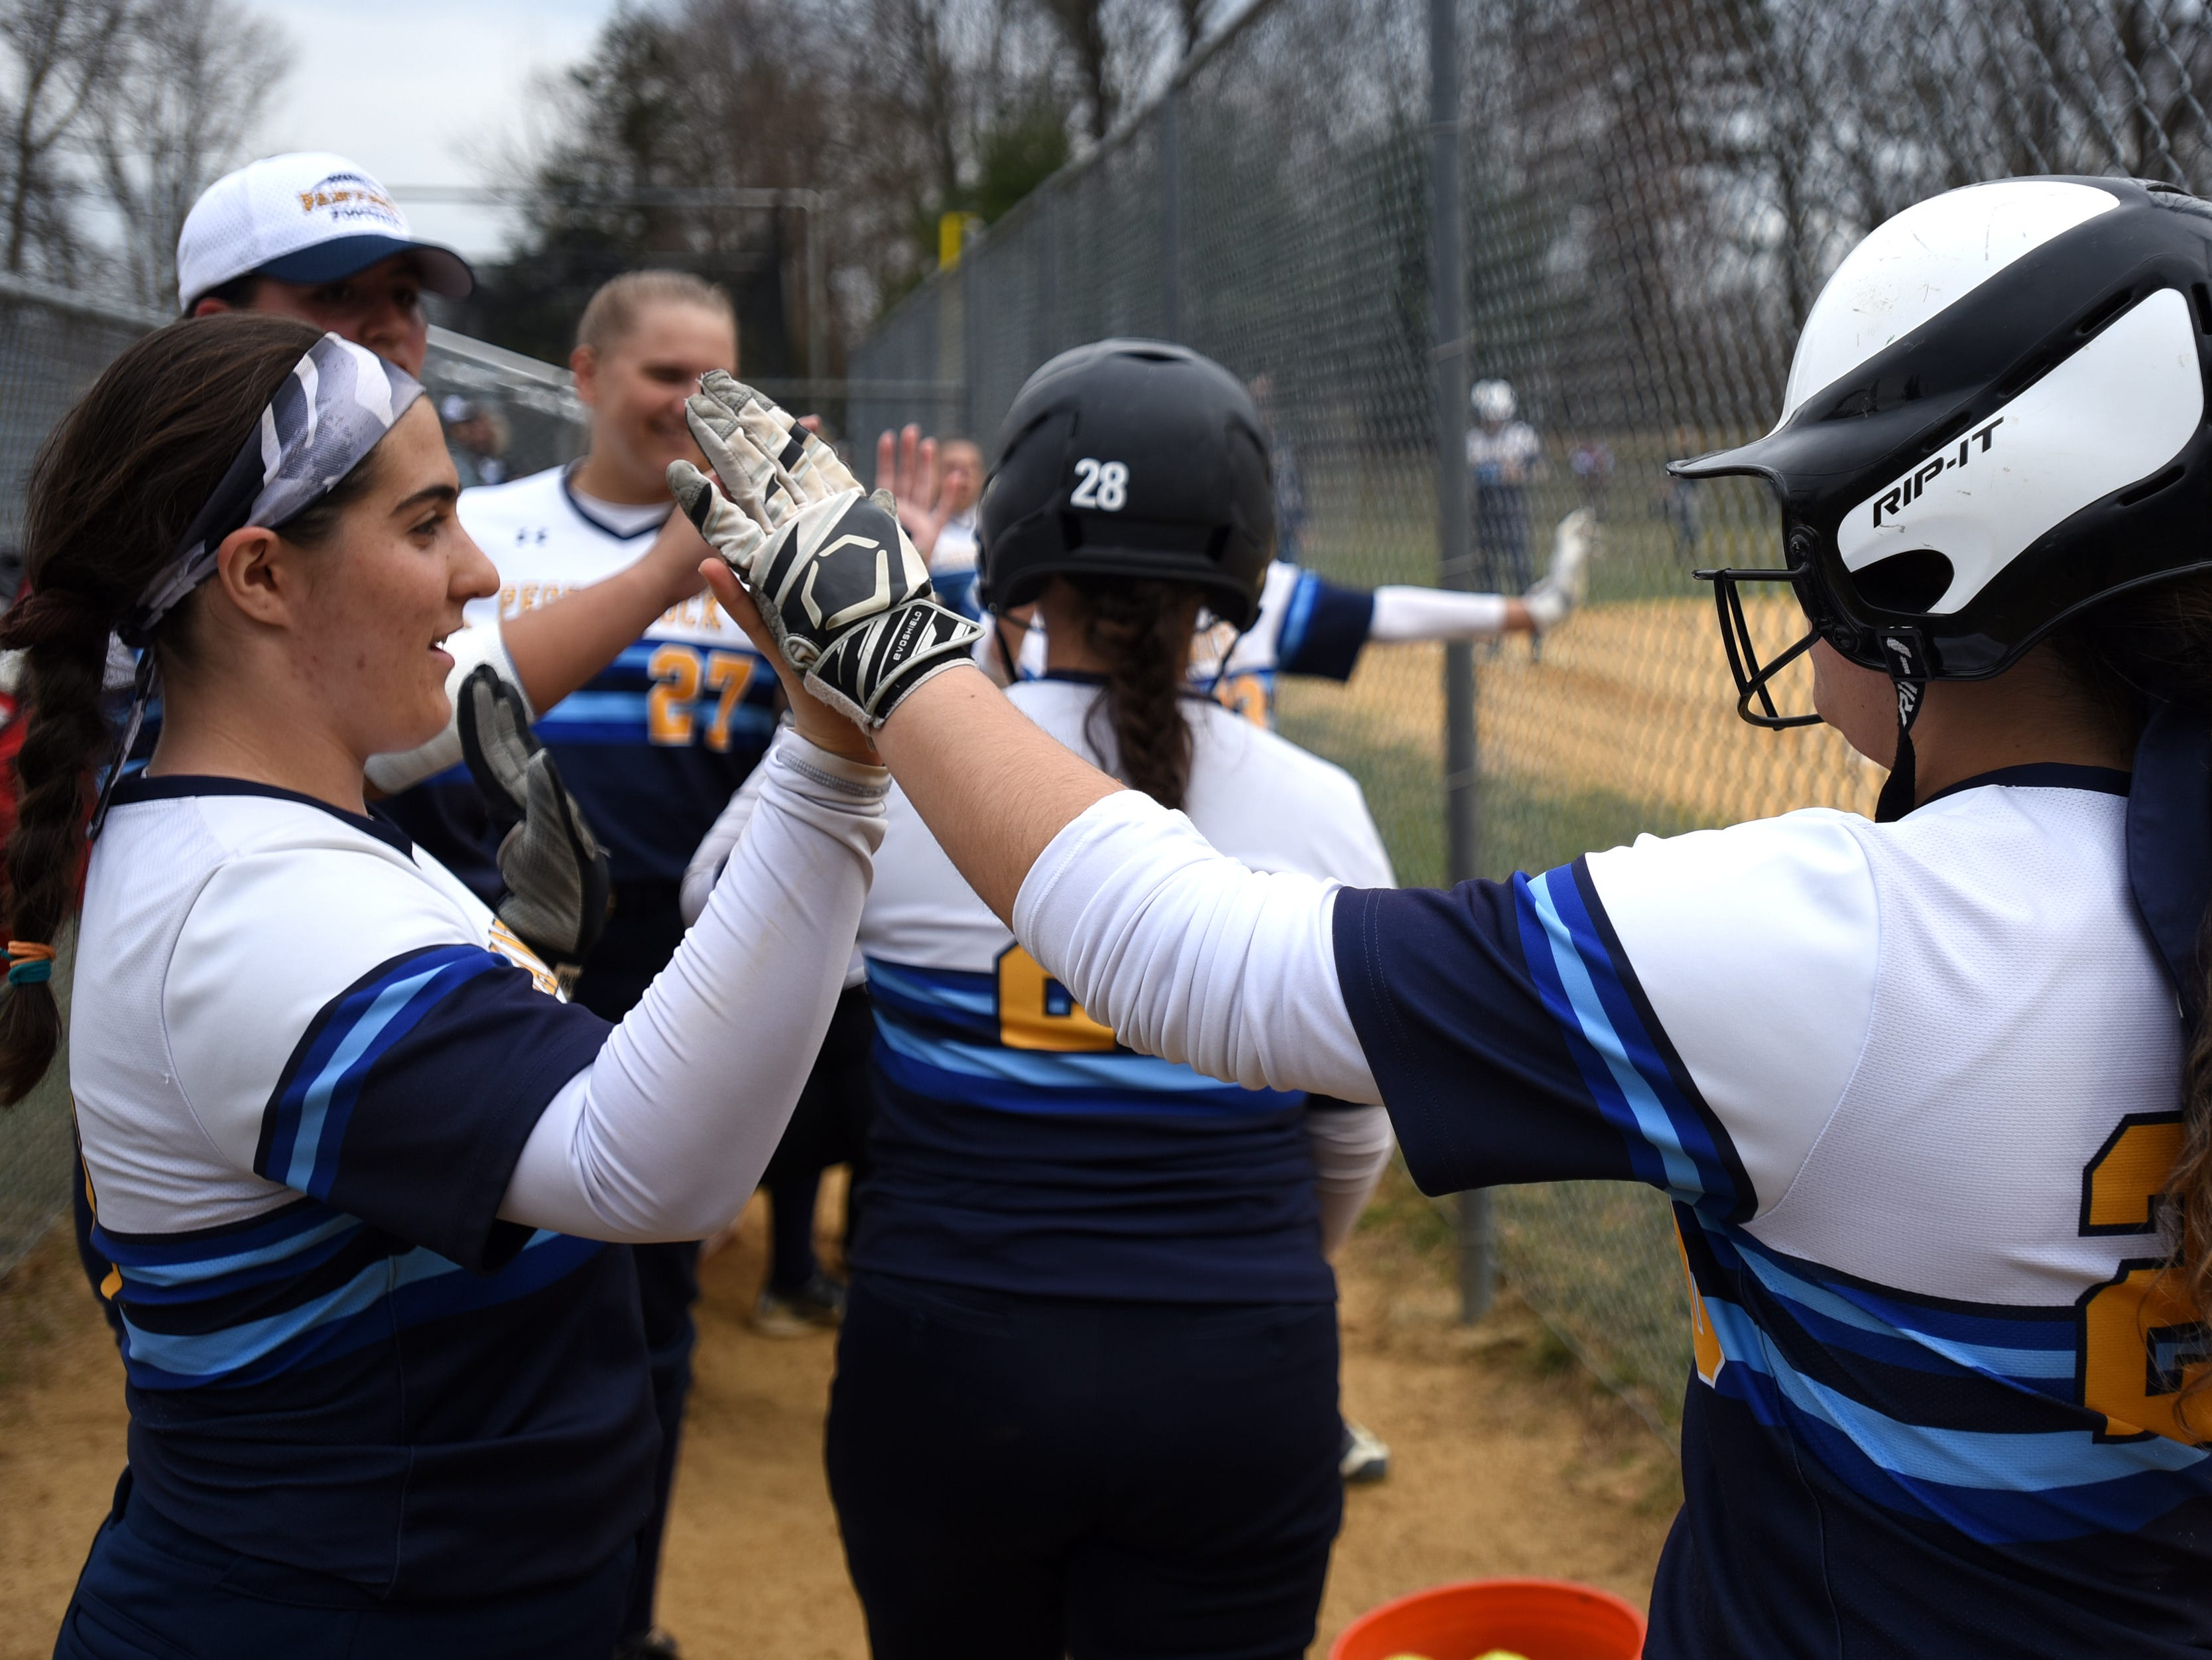 Pequannock at Kinnelon softball game in Kinnelon on Friday April 12, 2019. Pequannock players high-five one another.